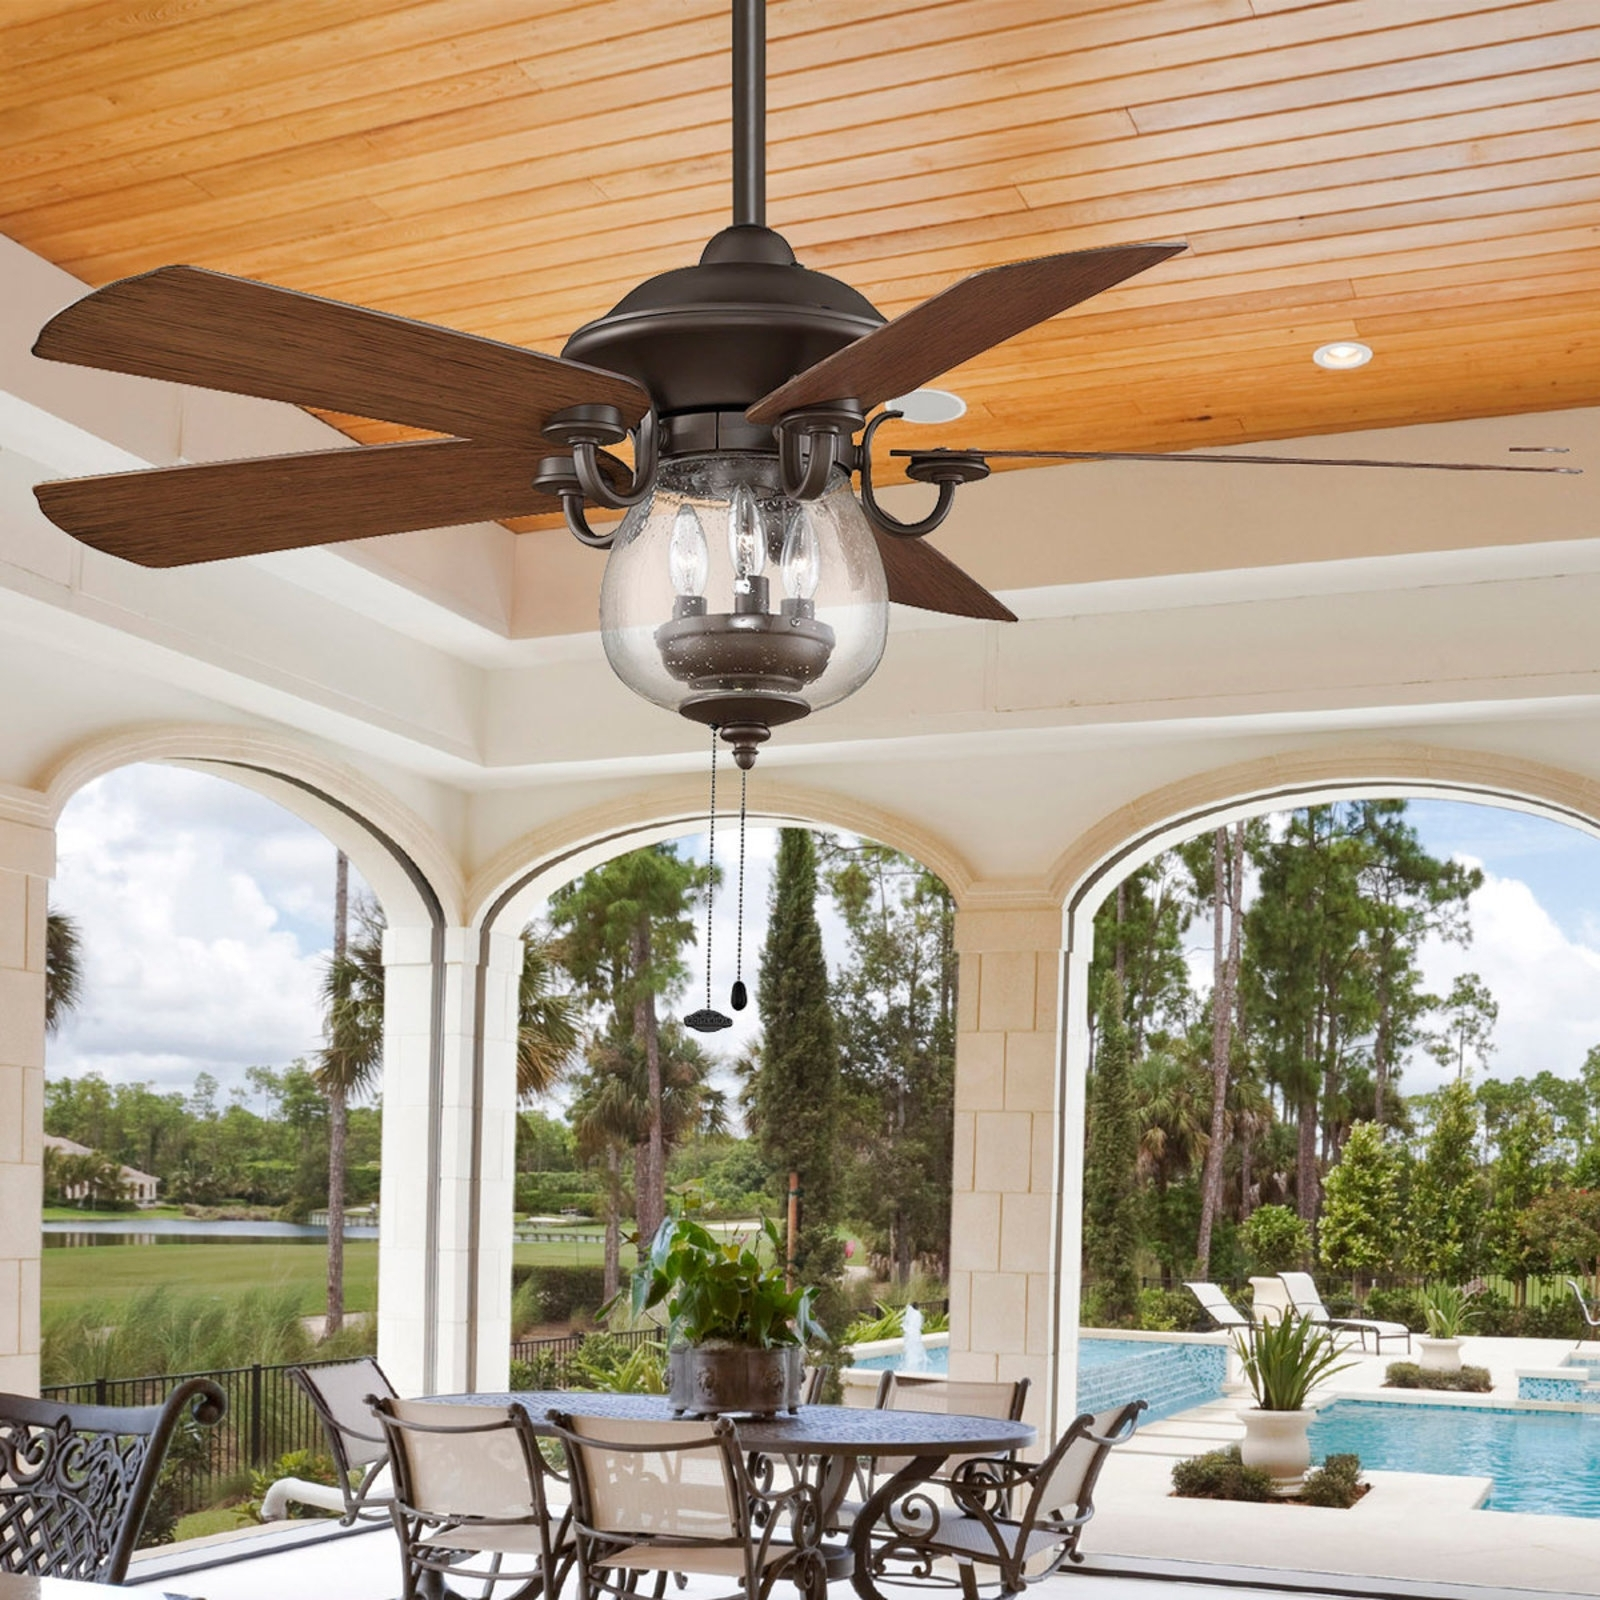 Outdoor Ceiling Fans – Design For Comfort Throughout Most Up To Date Outdoor Ceiling Fans With Motion Light (Gallery 6 of 20)